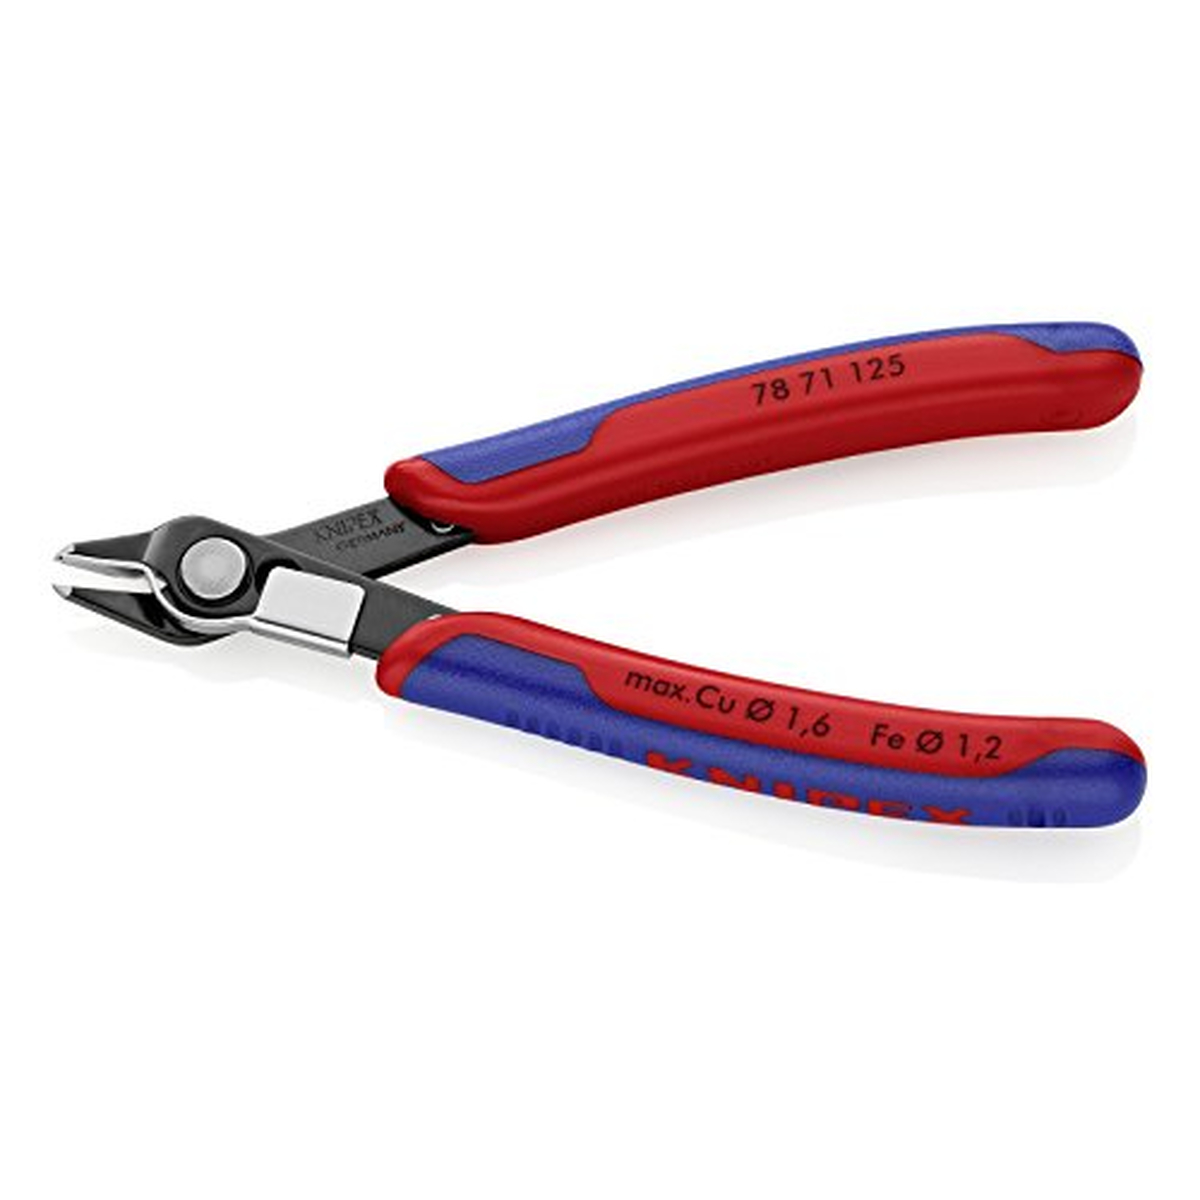 KNIPEX Electronic-Super-Knips� 125 mm, 78 71 125